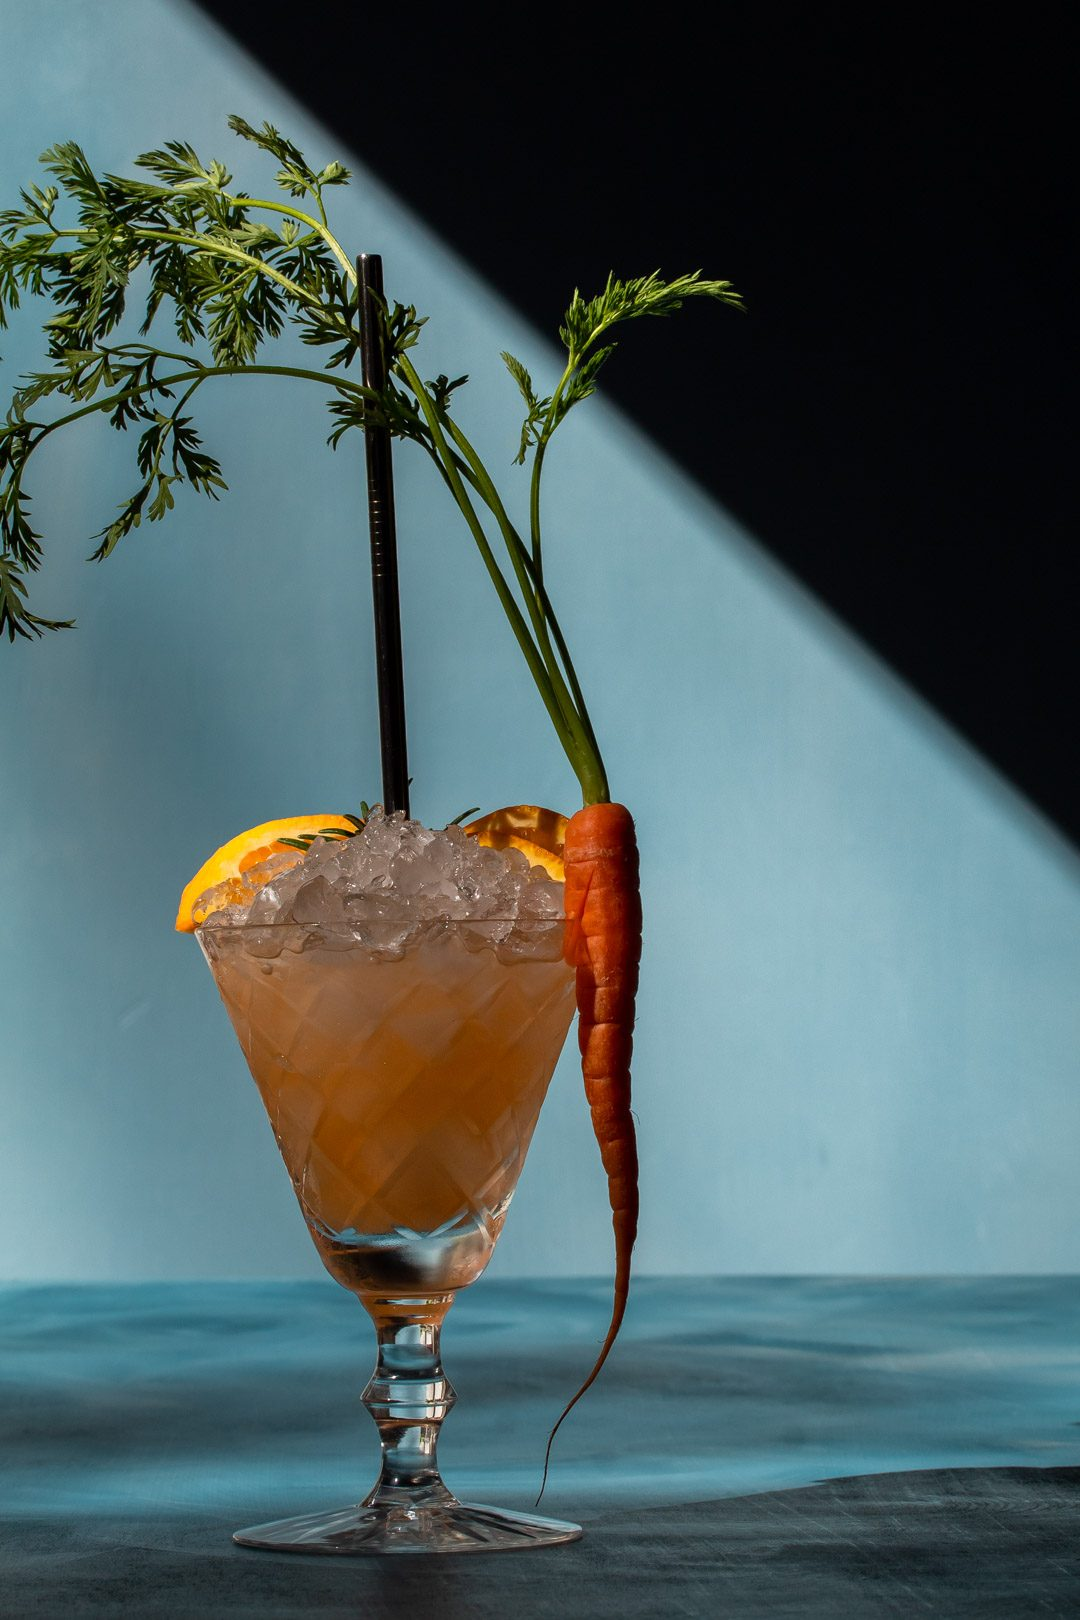 carrot shrub daisy cocktail with shadows to right on blue background